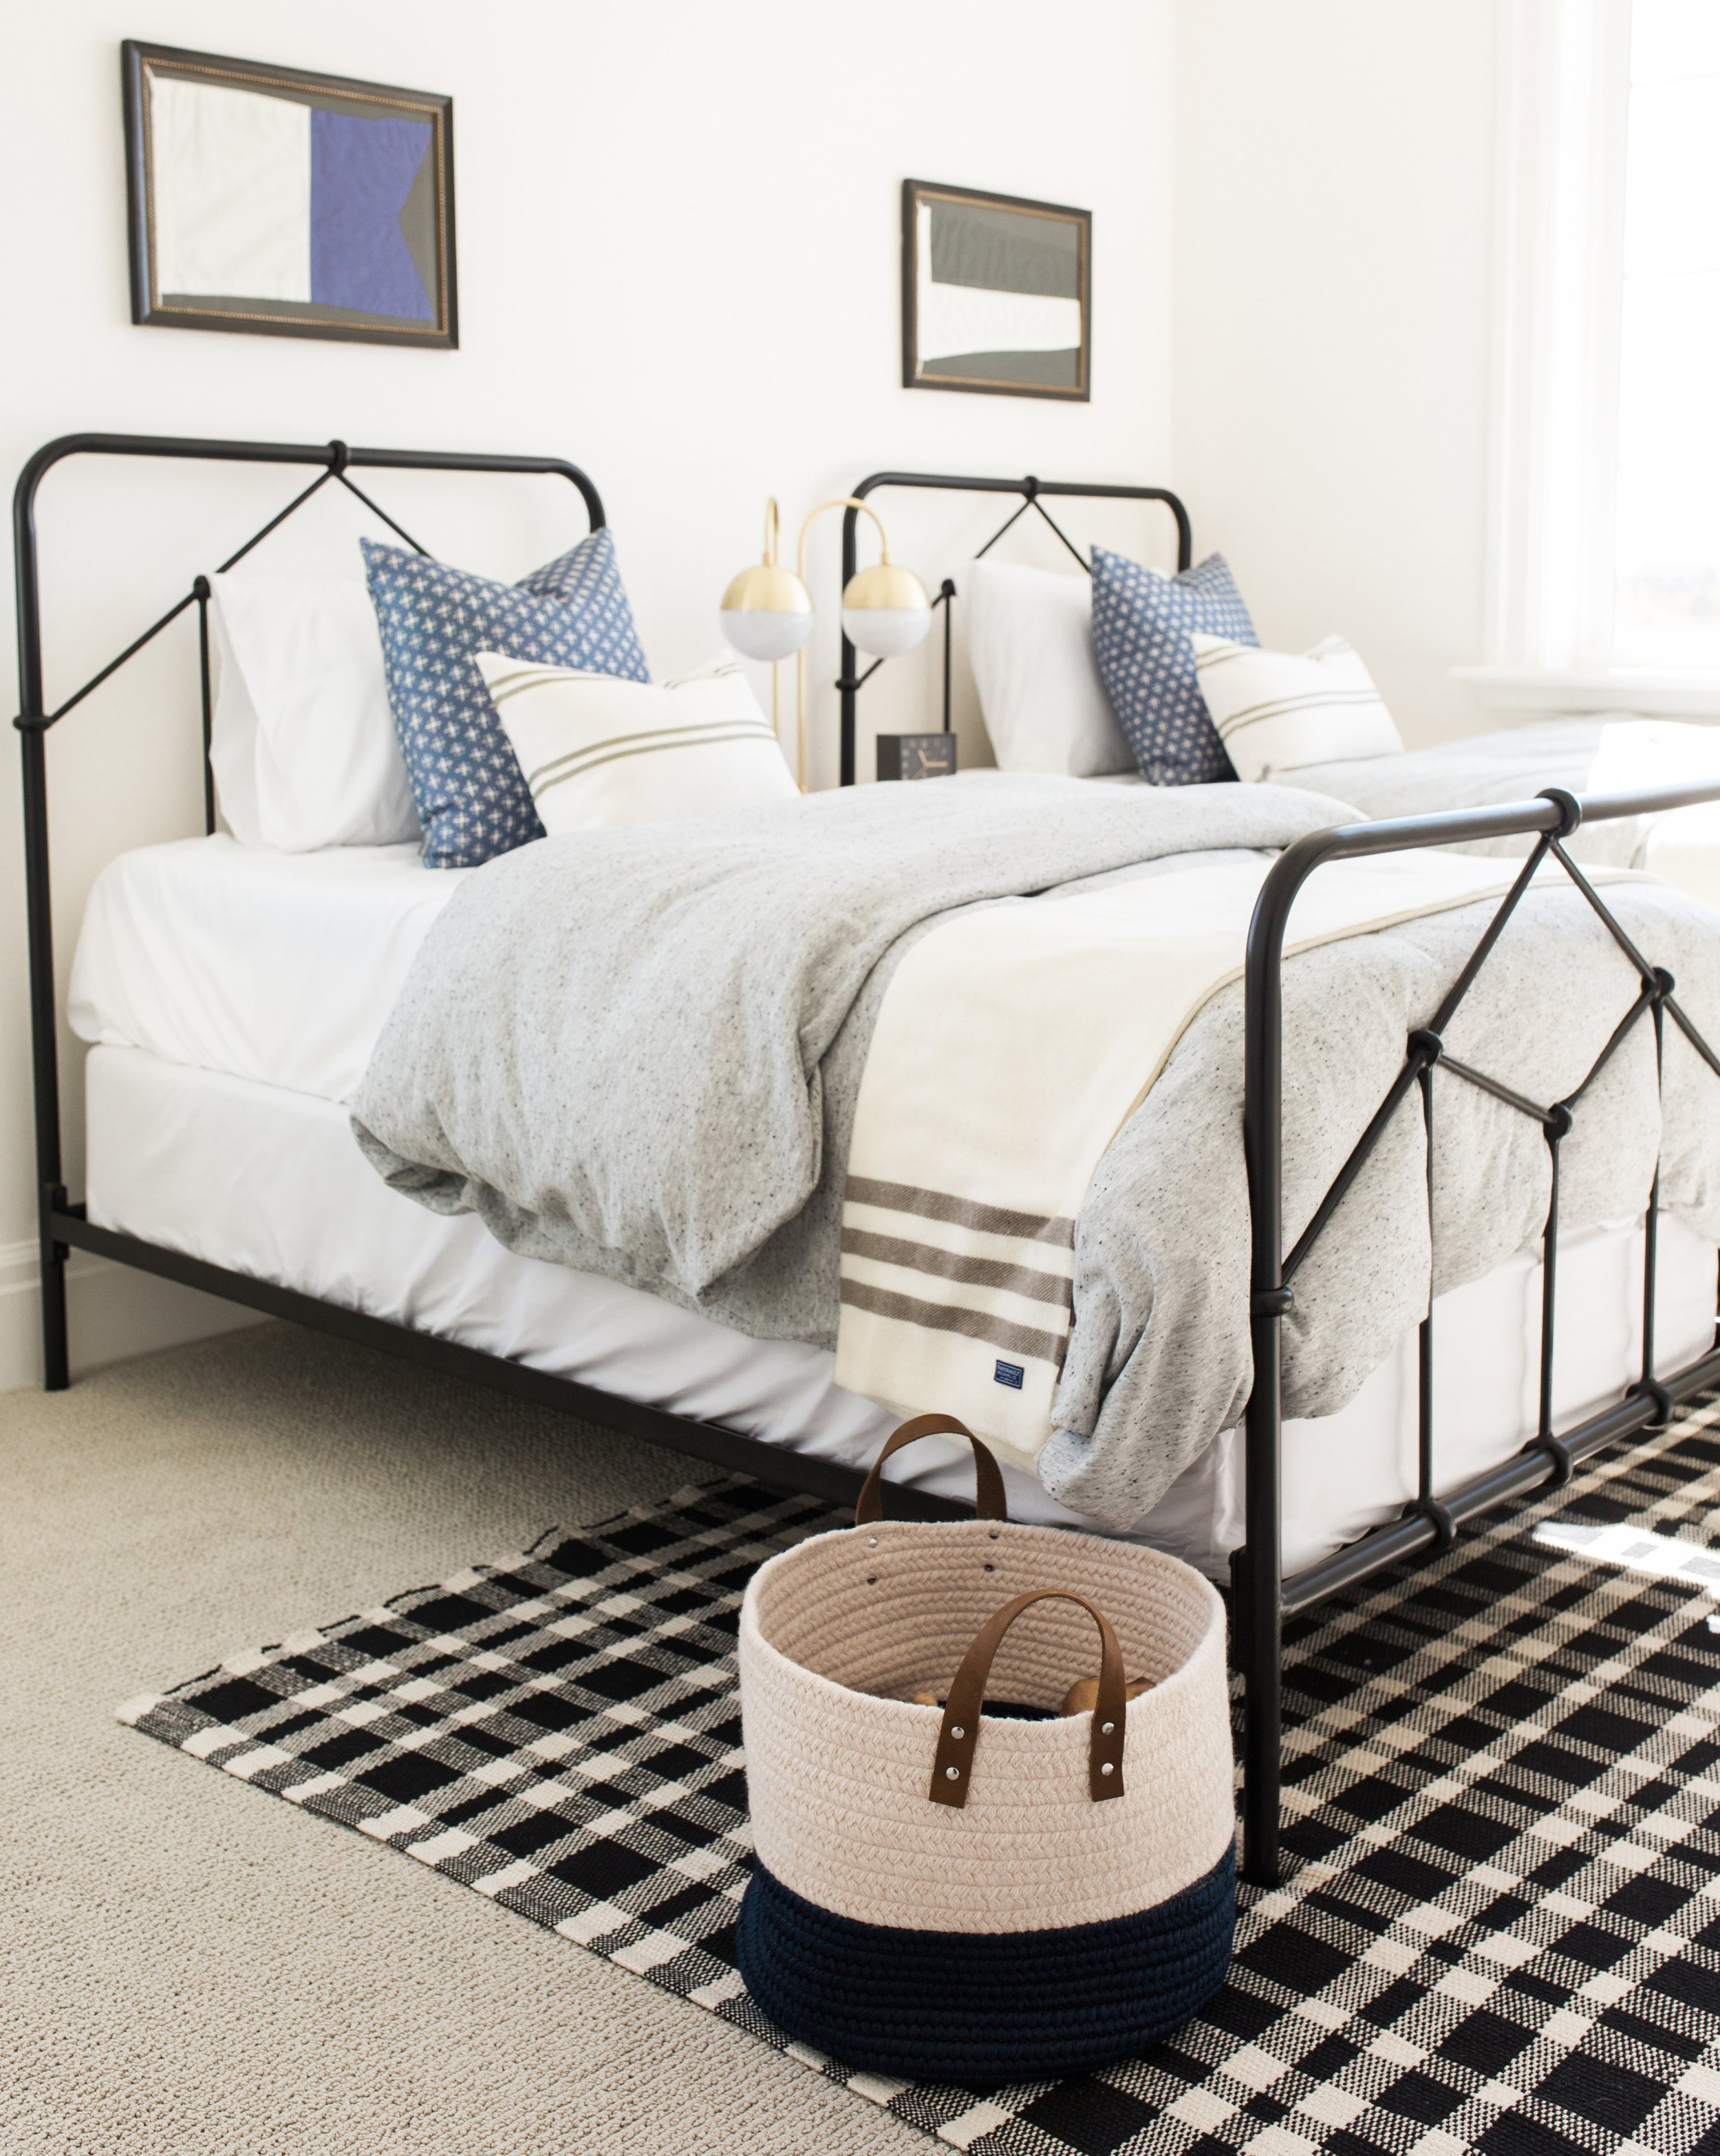 PIPER BED